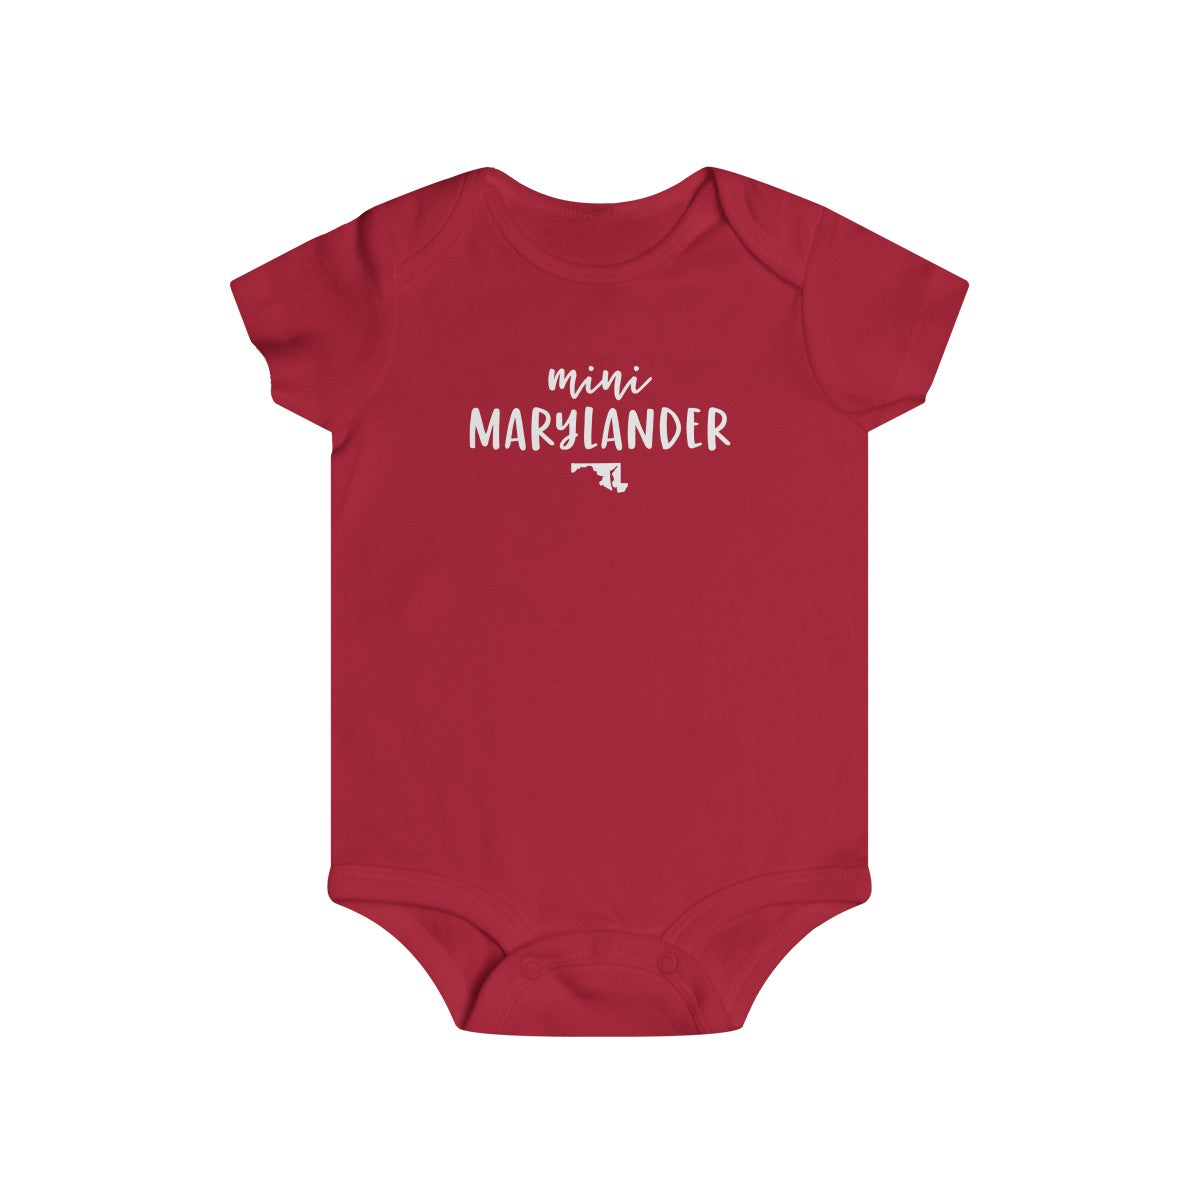 Mini Marylander - Bodysuit